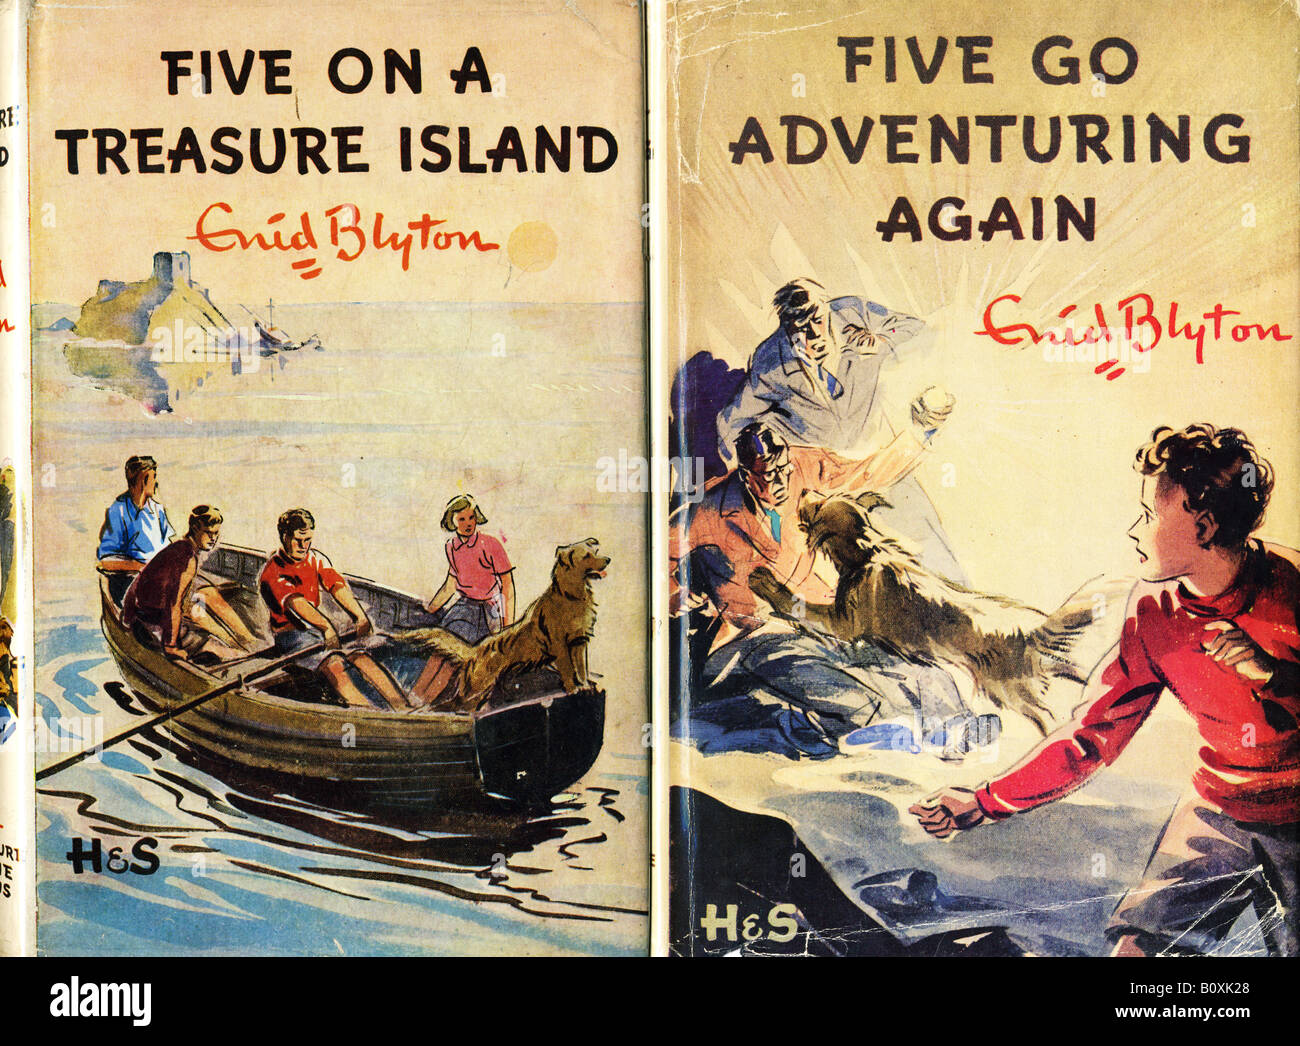 The First two Famous Five Children's Hardback Books by Enid Blyton 1940s FOR EDITORIAL USE ONLY - Stock Image